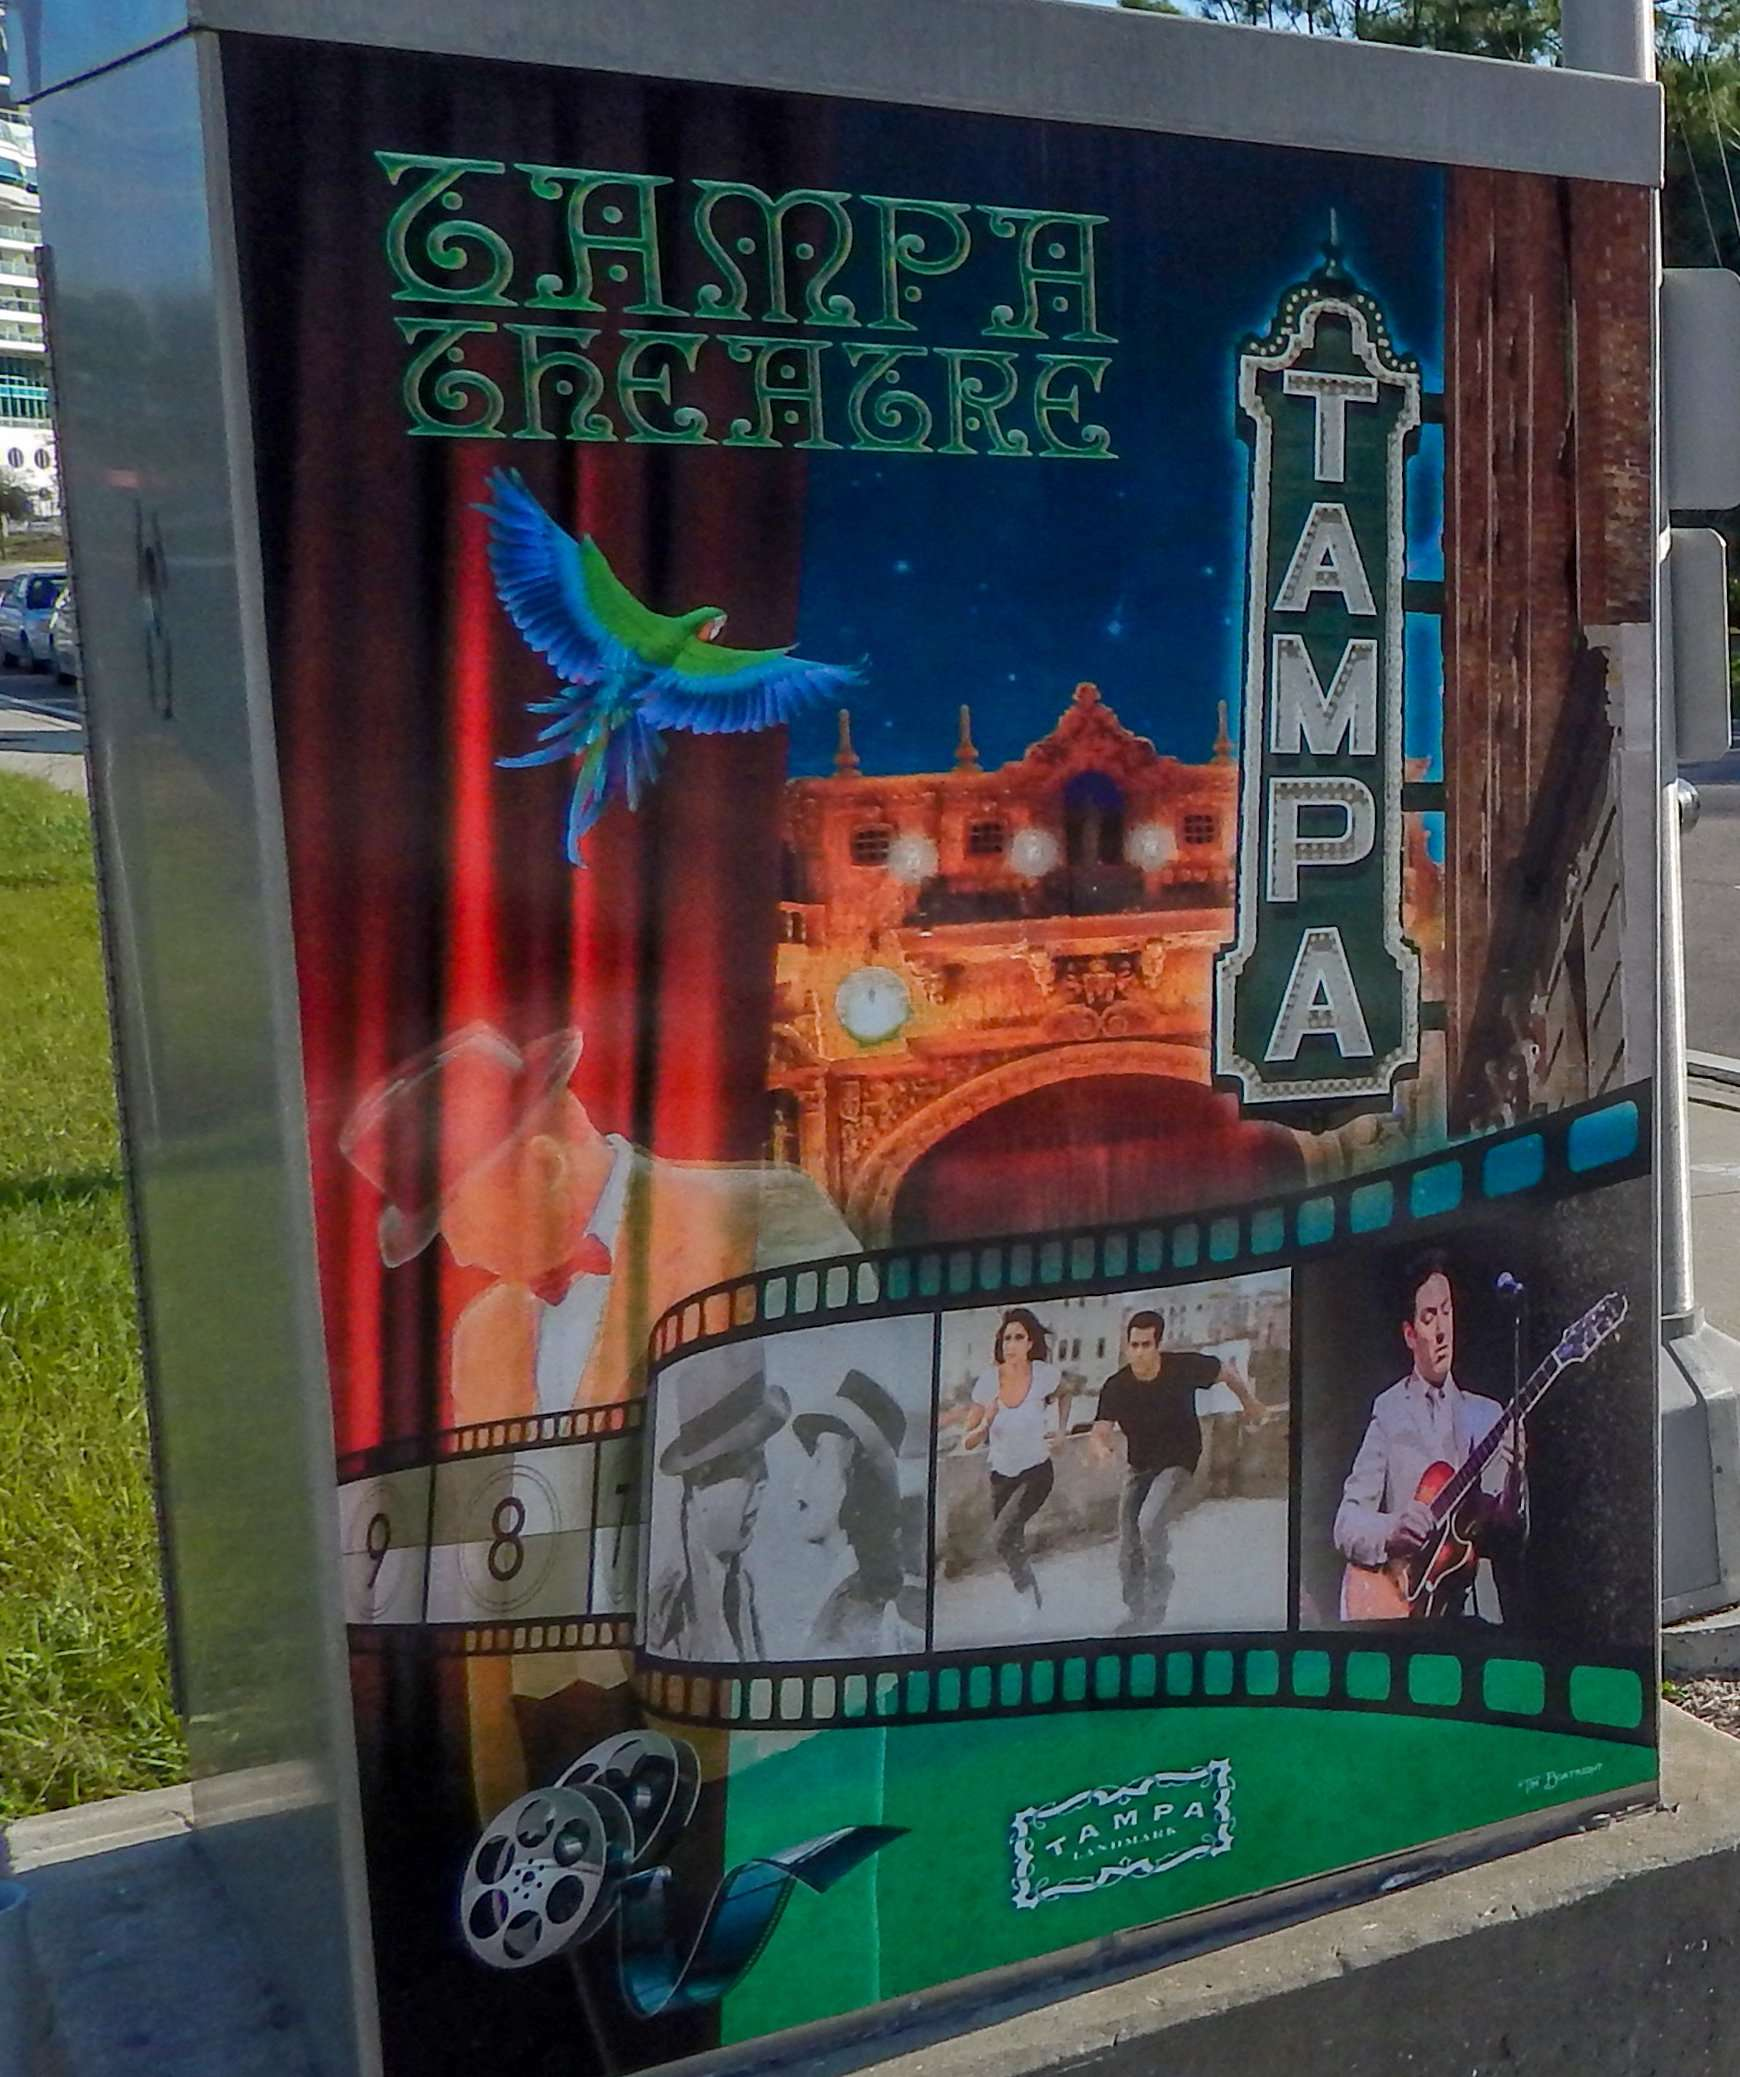 DEC 20, 2015 - Tampa Theaterart decal on electric box on Channesidel Drive in Tampa FL/photonews247.com